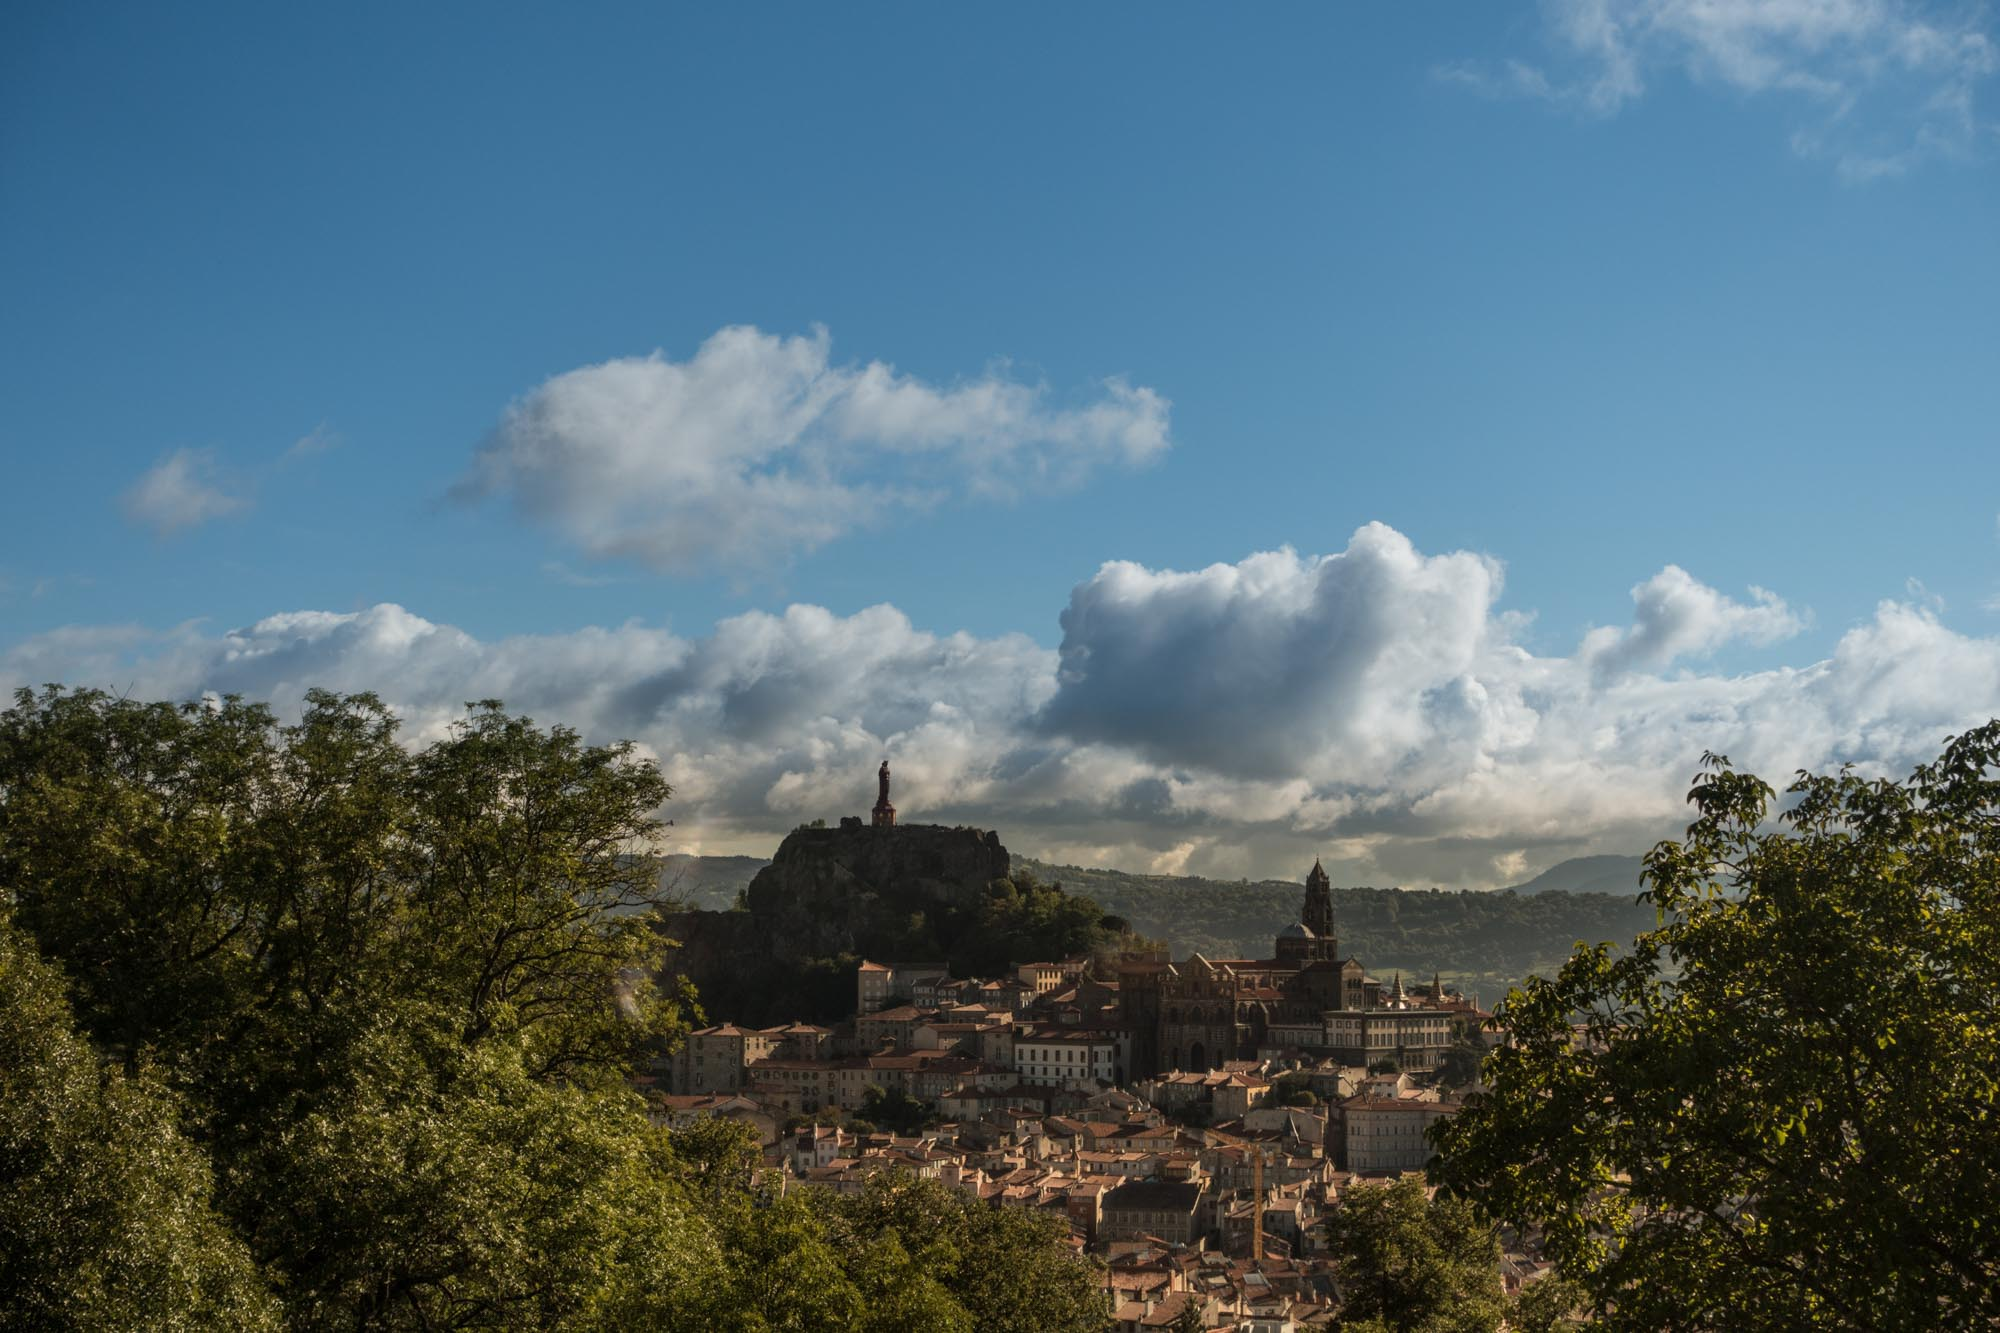 Le Puy en Velay in the morning sun